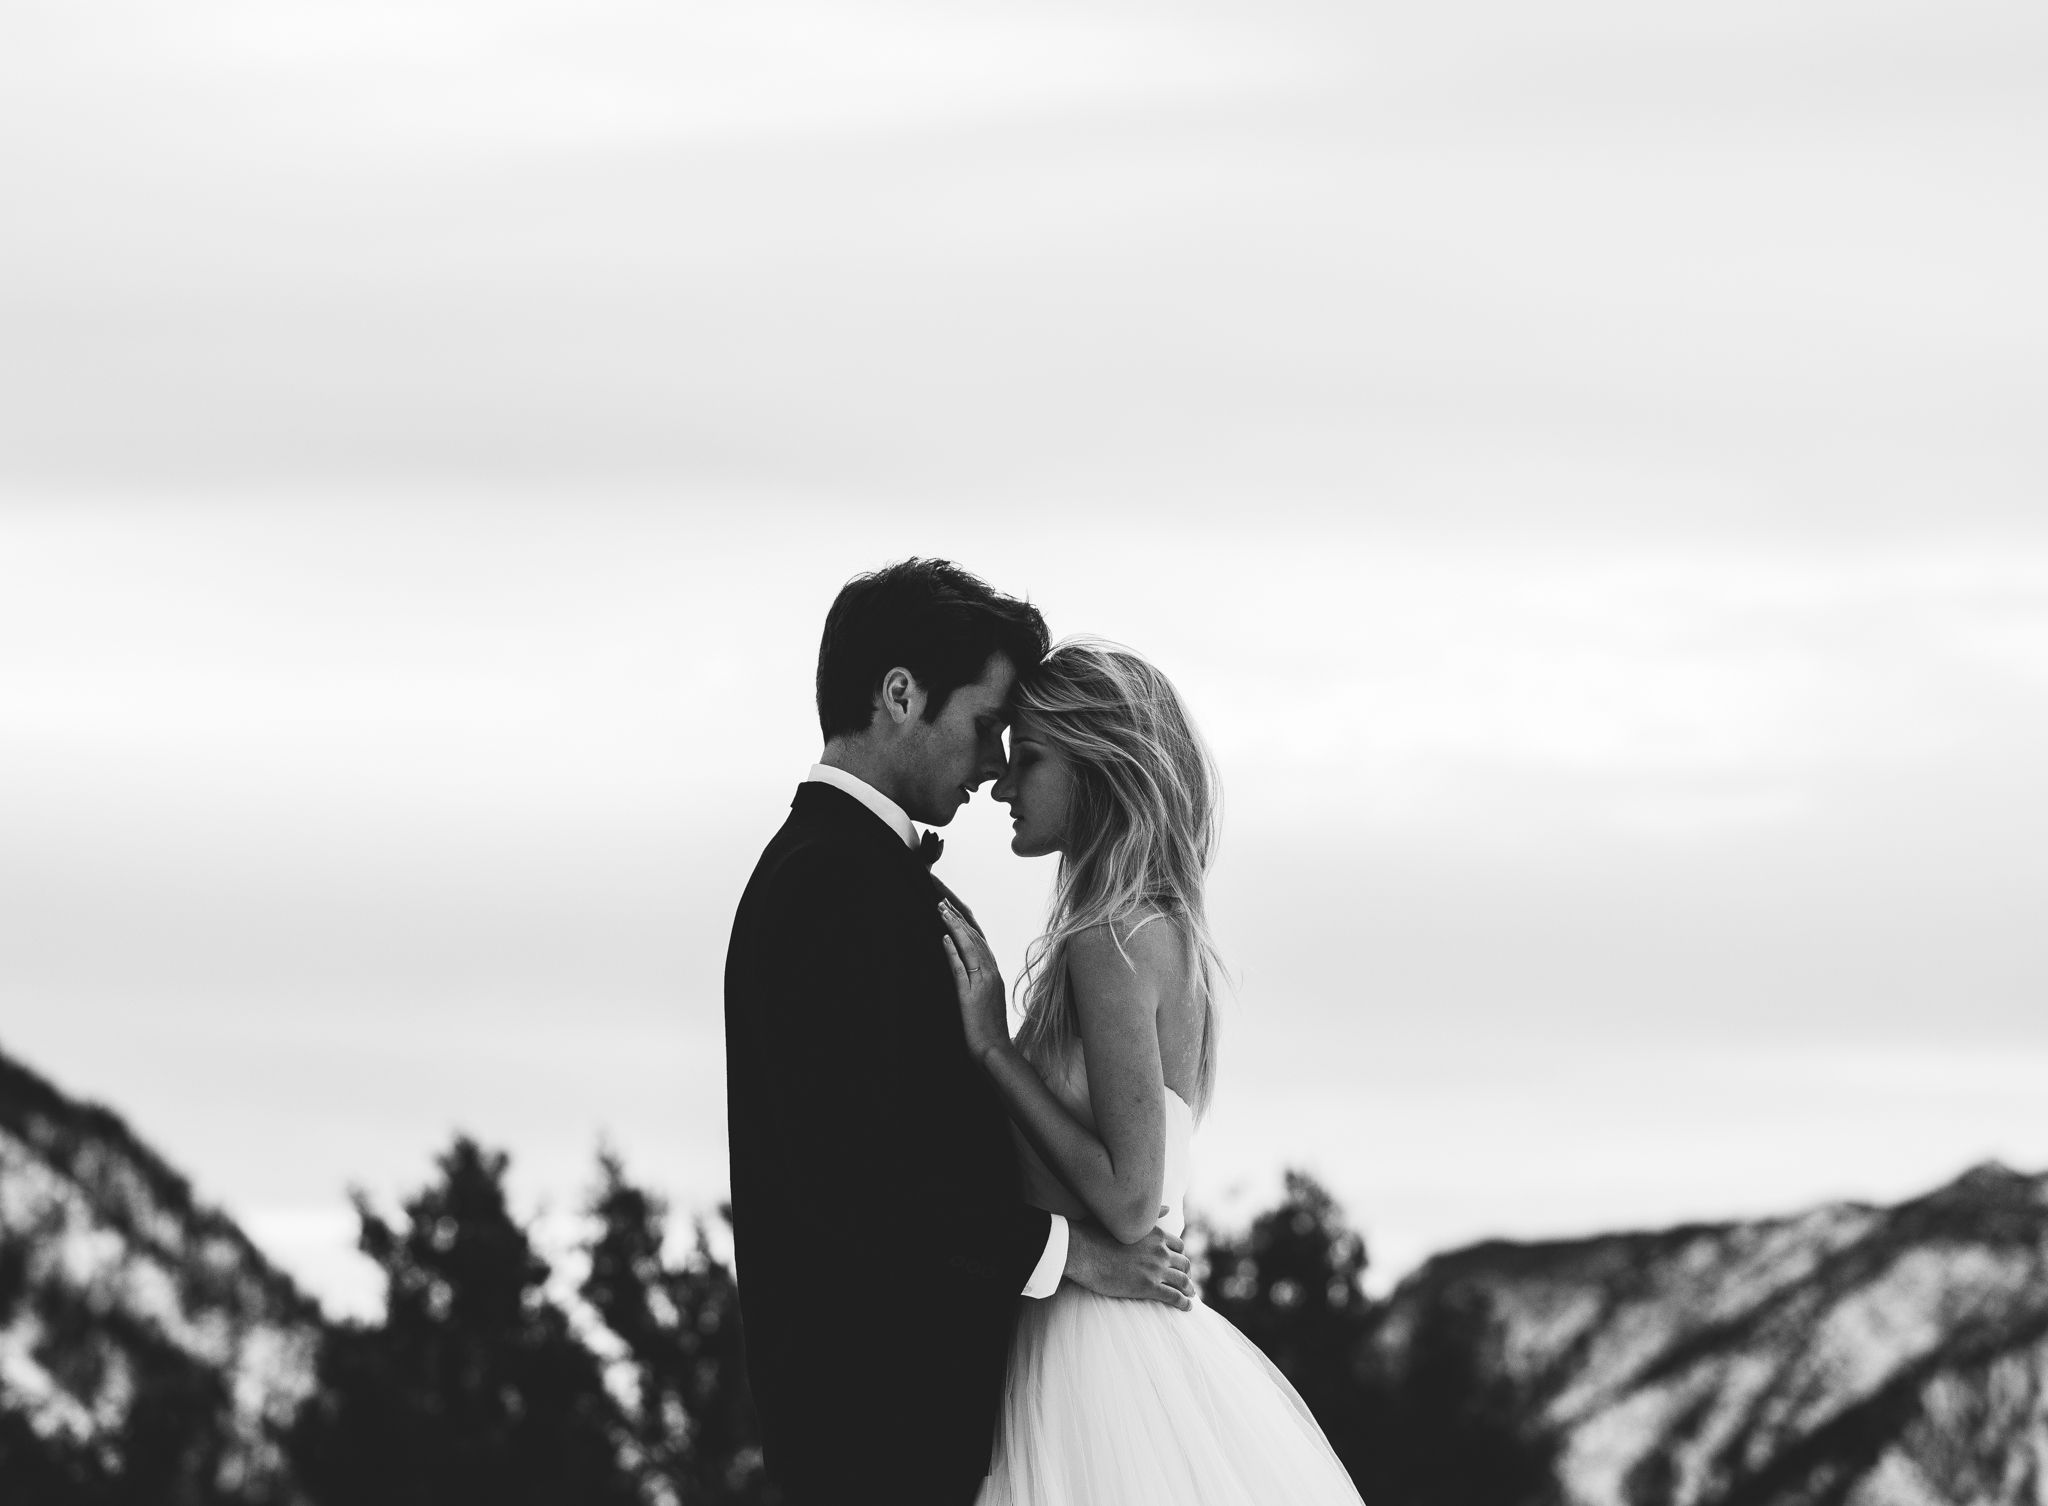 ©Isaiah & Taylor Photography - Ben & Kadin Honeymoon-043.jpg